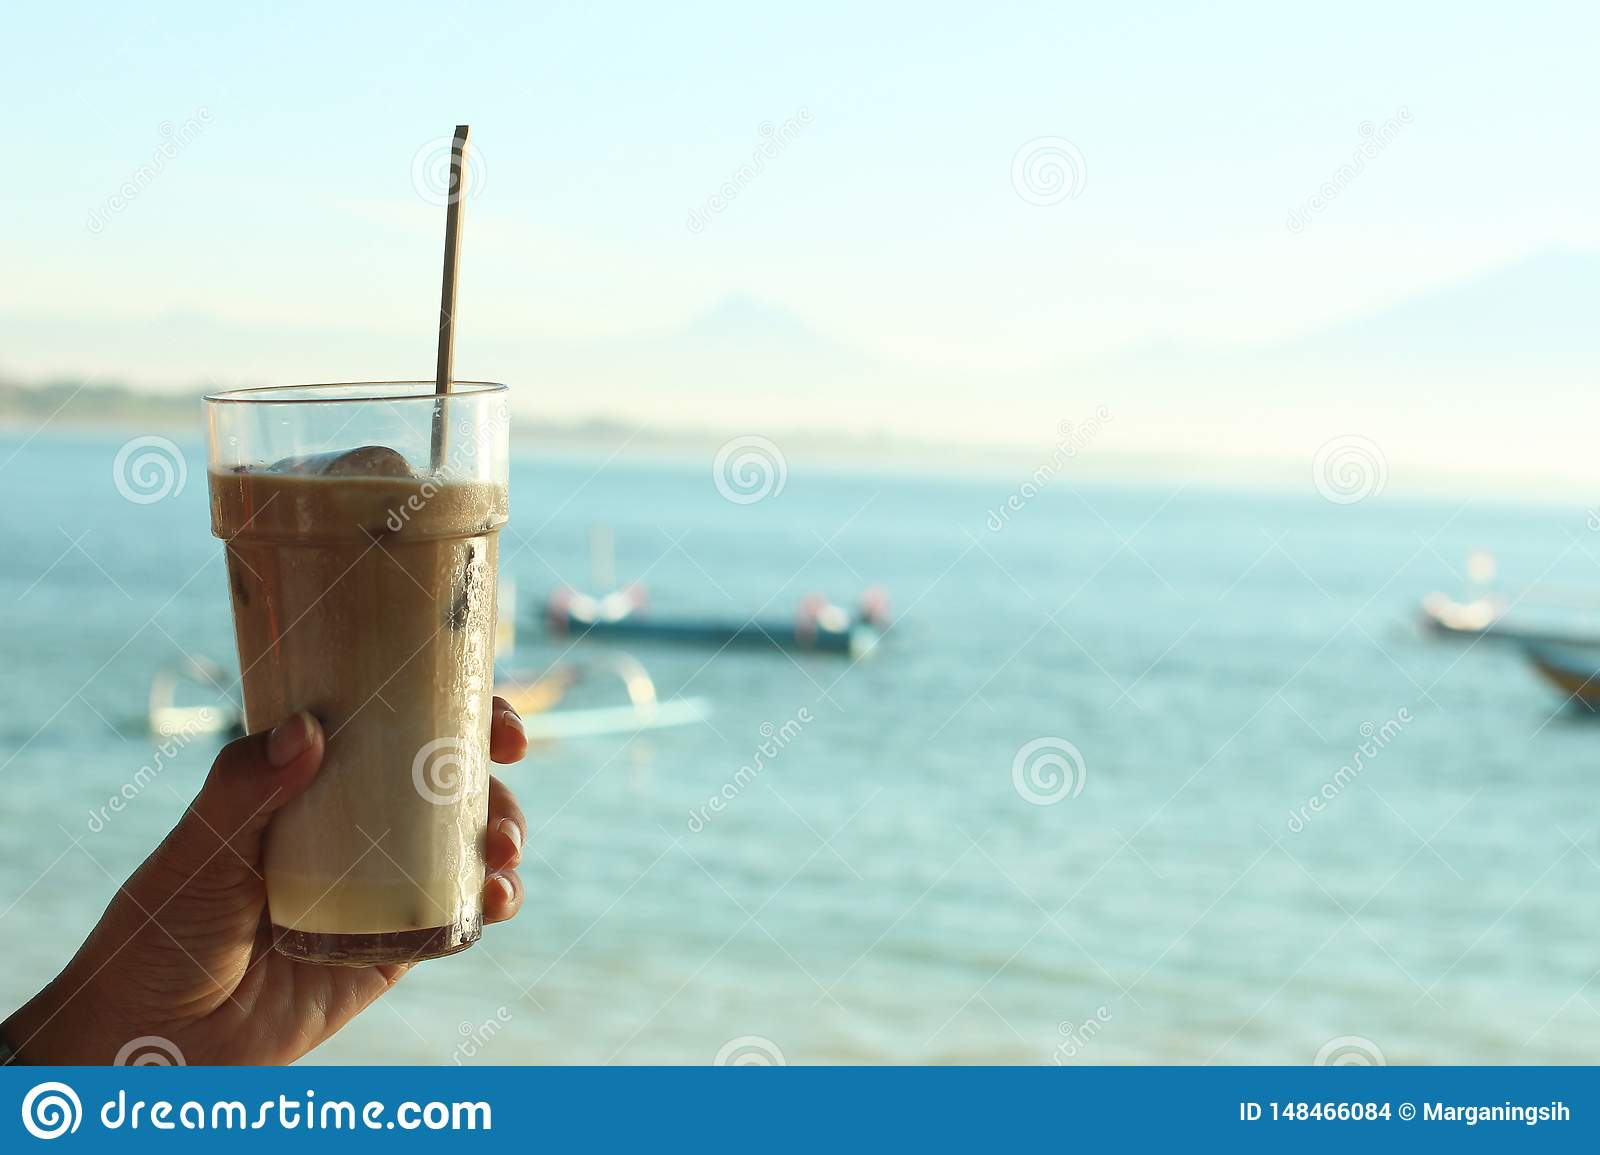 Fresh Ice Coffee Milk with blue beach background at day time. Holiday mood. Fresh drink in hand